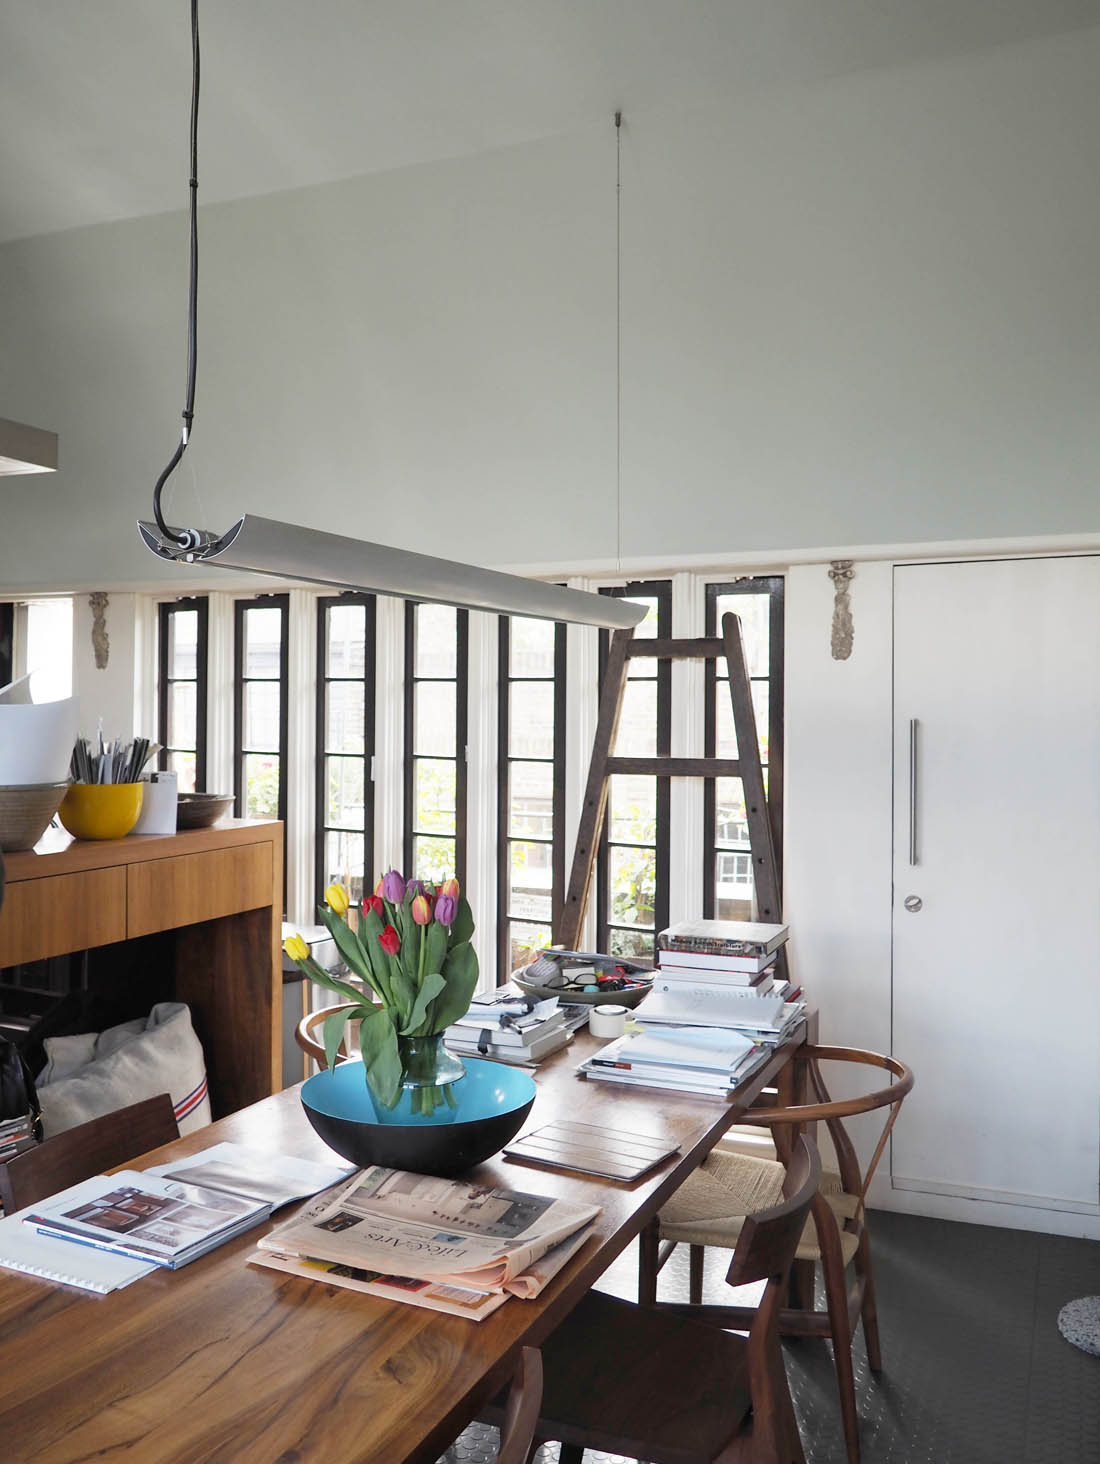 Function+Form east London house tours with Houzz | Spitalfields Georgian townhouse | Apartment Apothecary